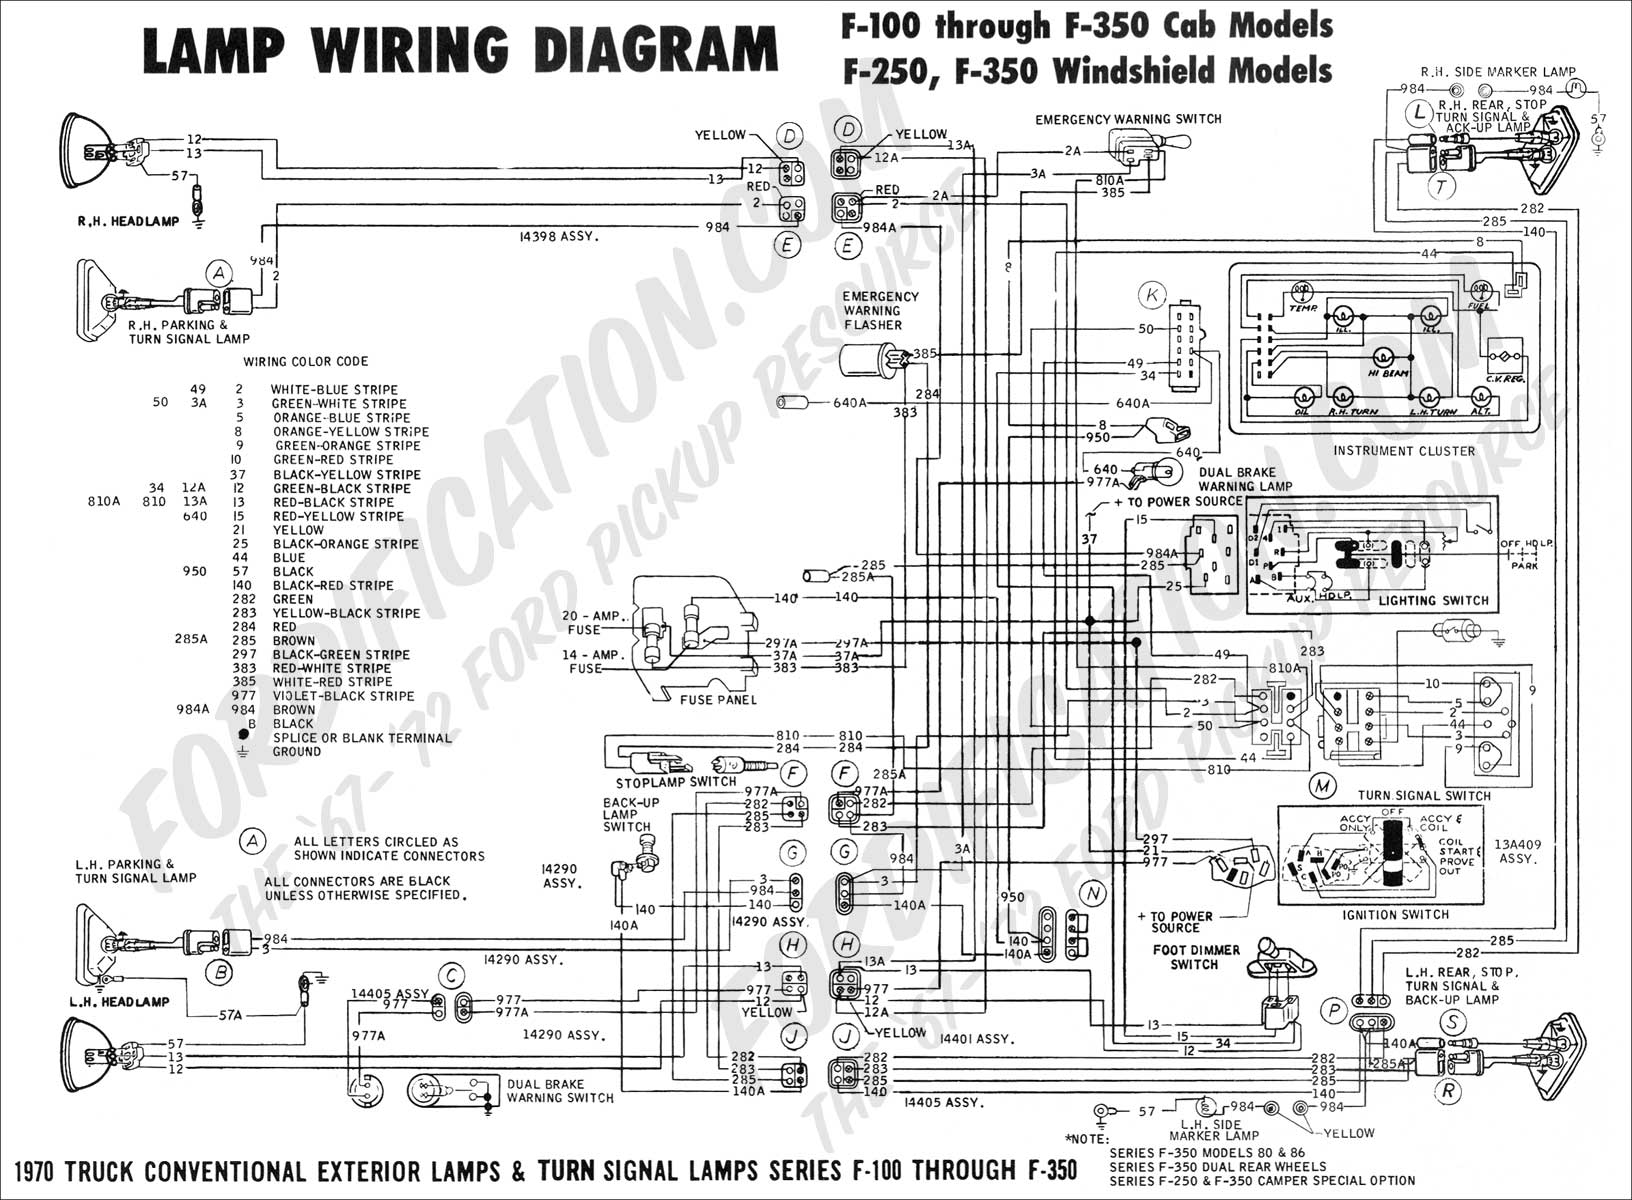 ford f wiring diagram wiring diagram and schematic design fuse box diagram for 2004 f250 super duty on 1999 f350 ford f450 wiring diagram james gaffigan